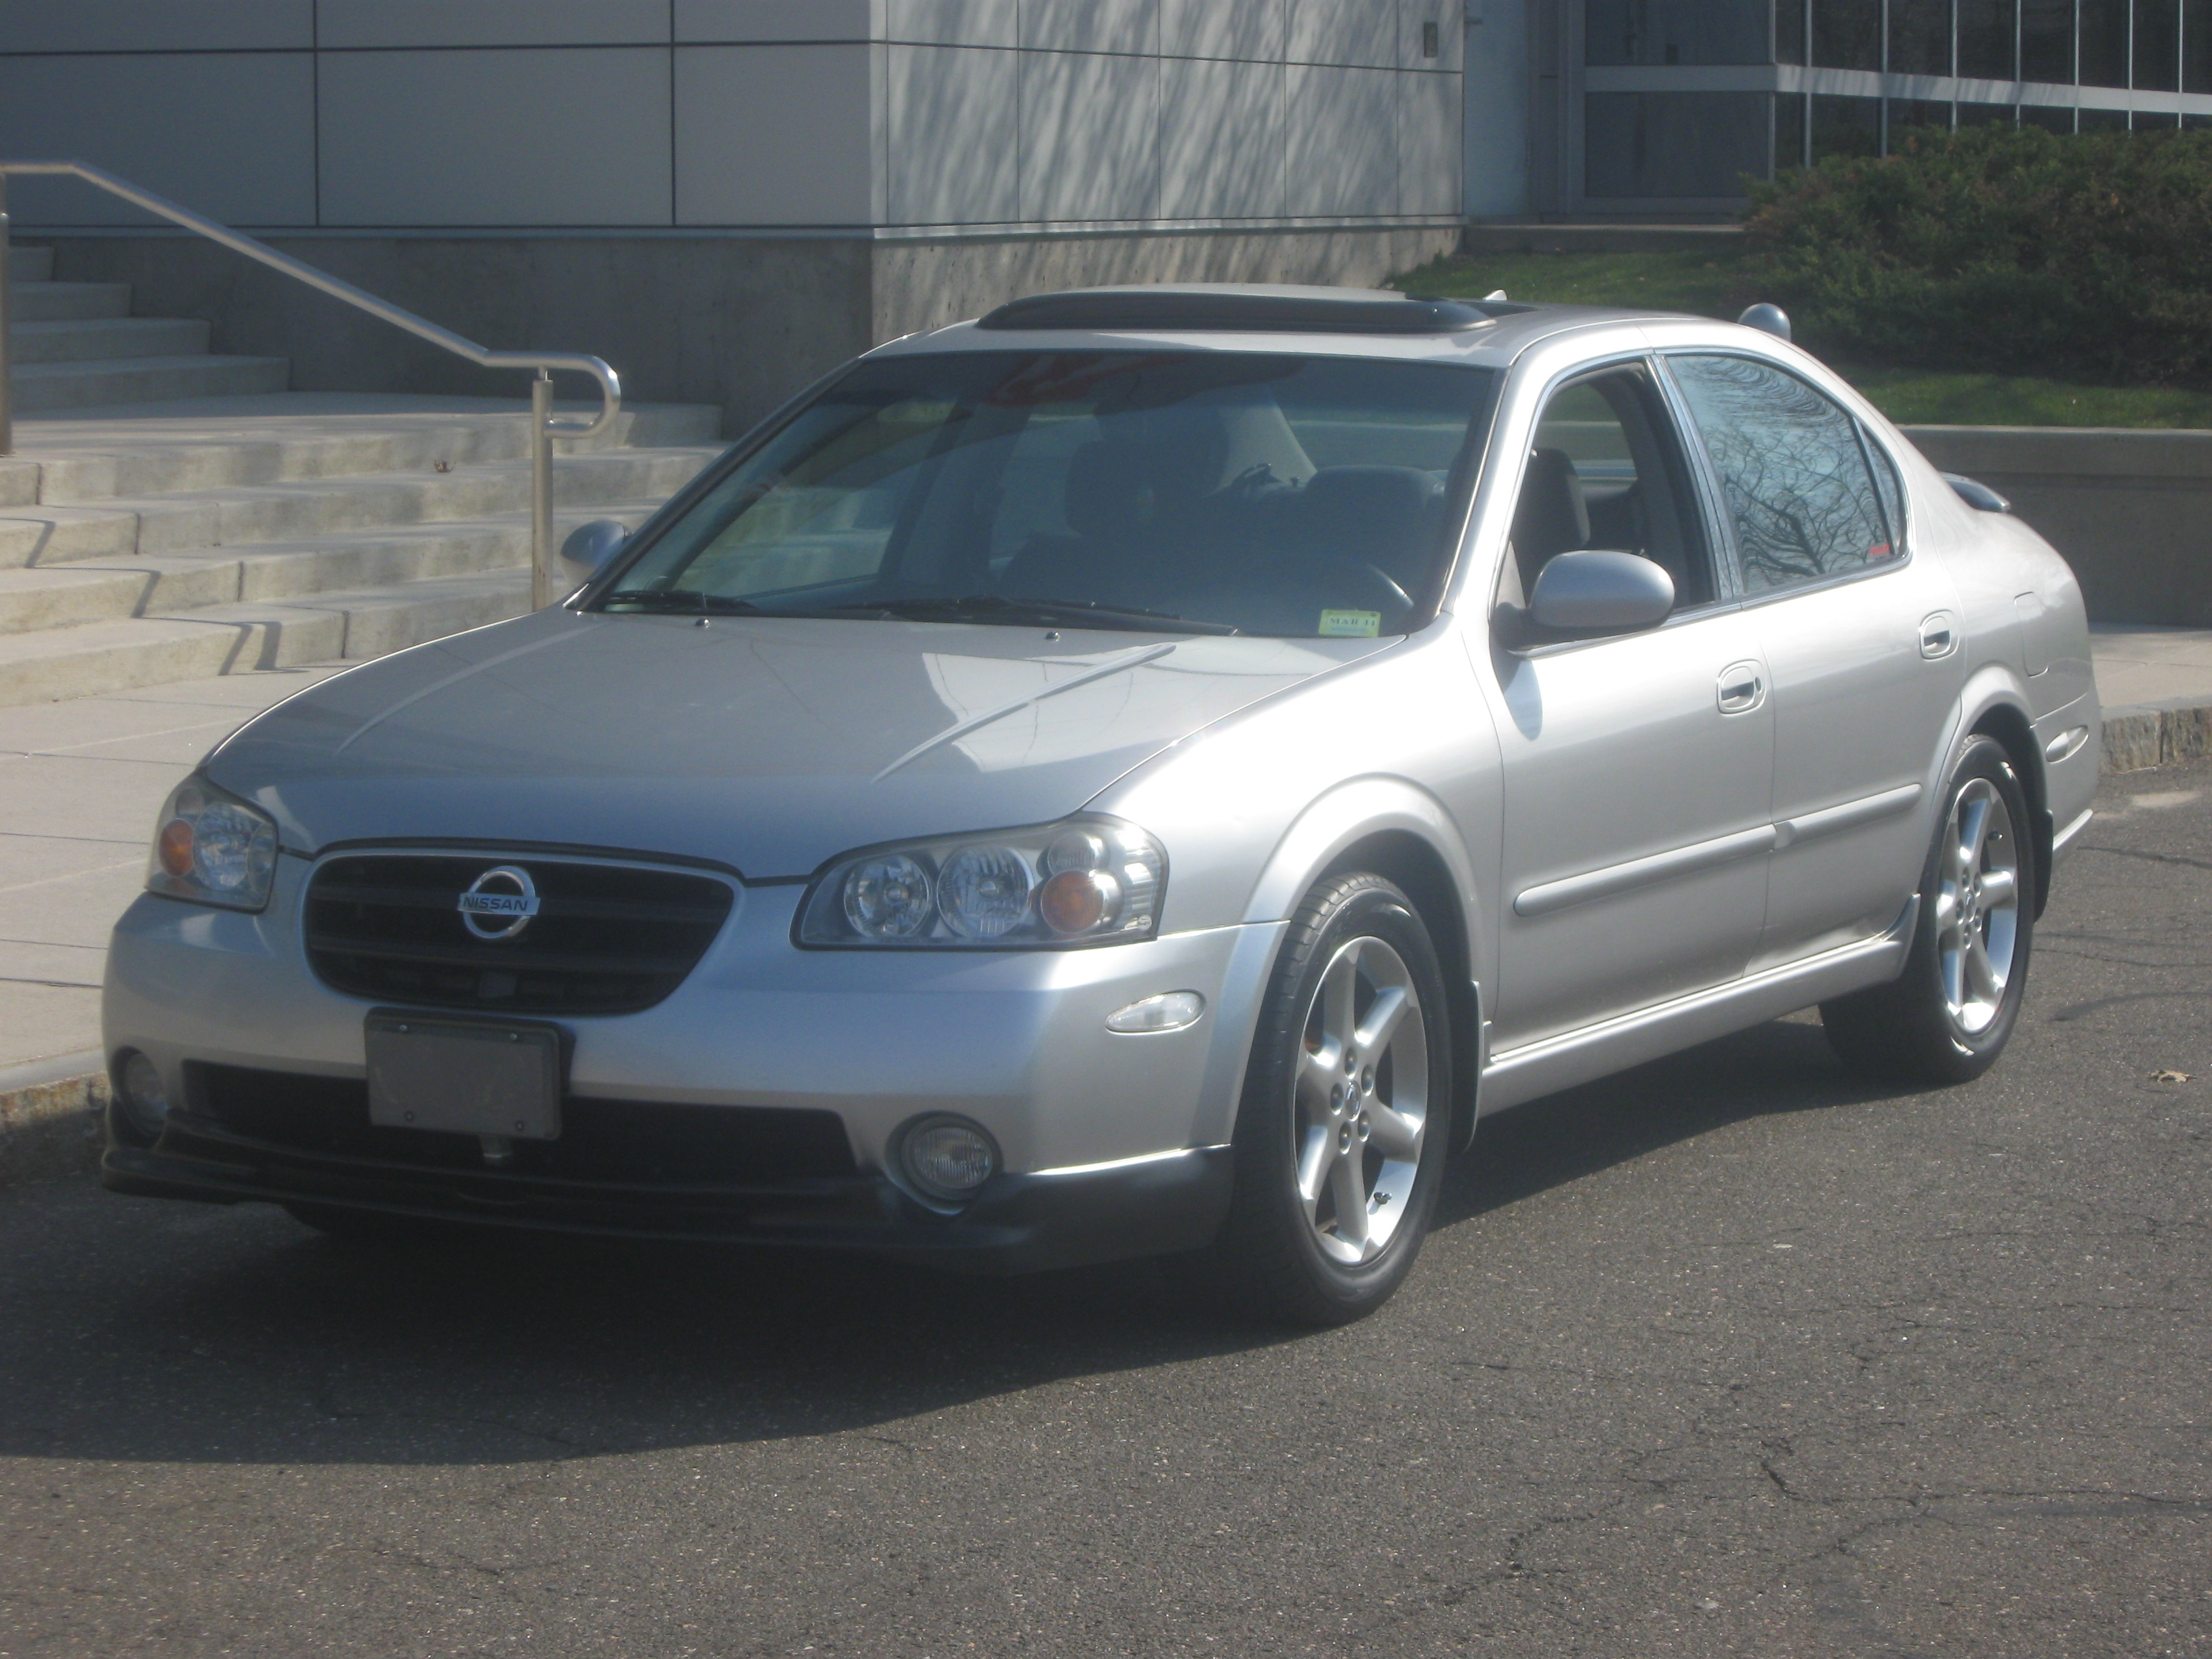 spags1 2003 Nissan Maxima